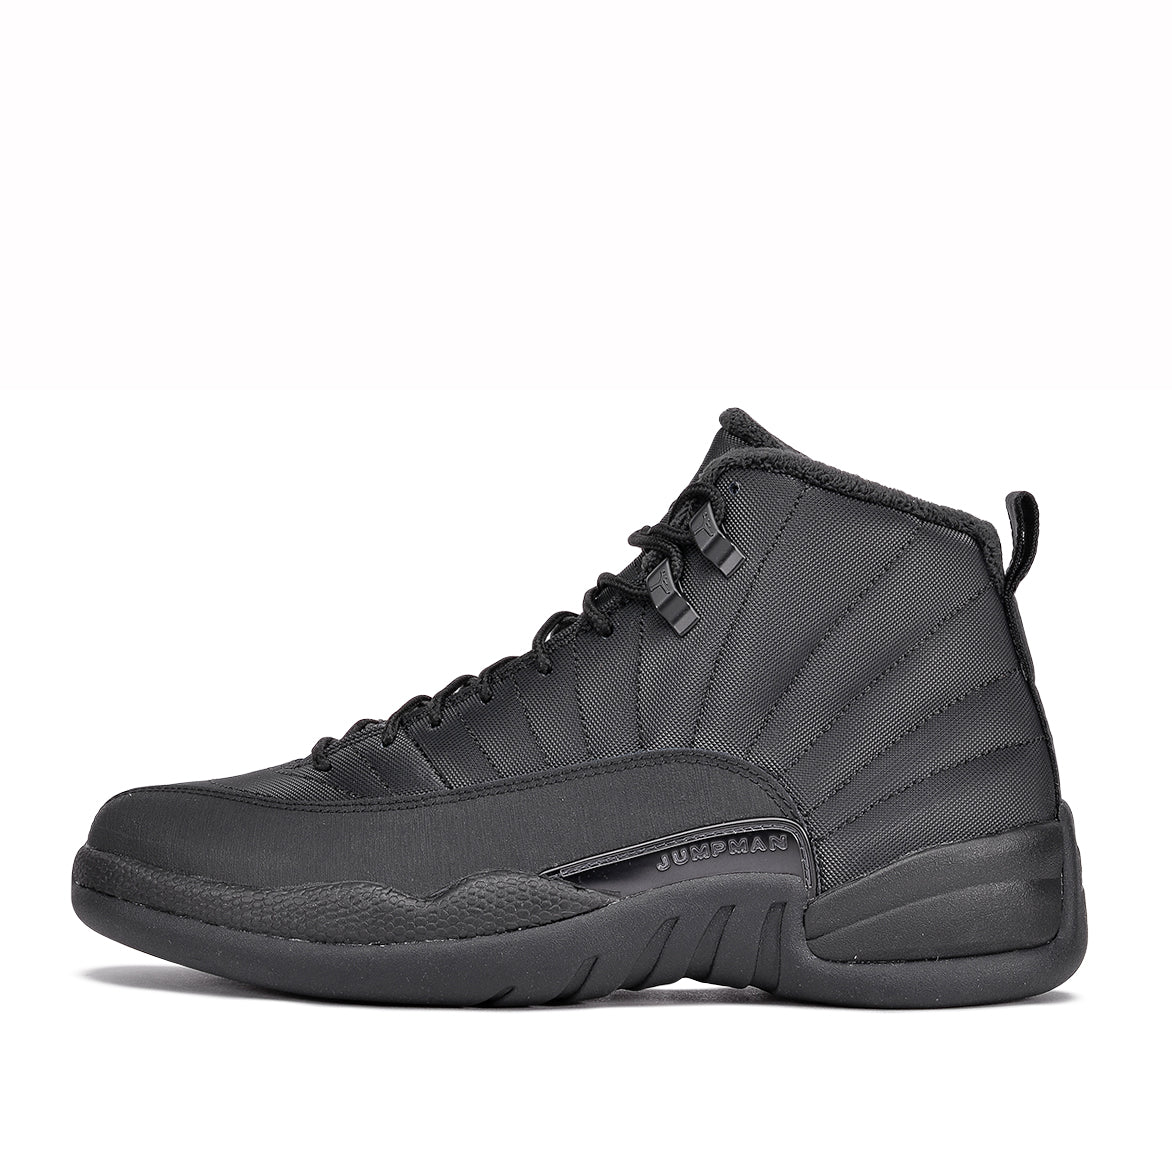 8da13d599059 AIR JORDAN 12 RETRO WINTERIZED